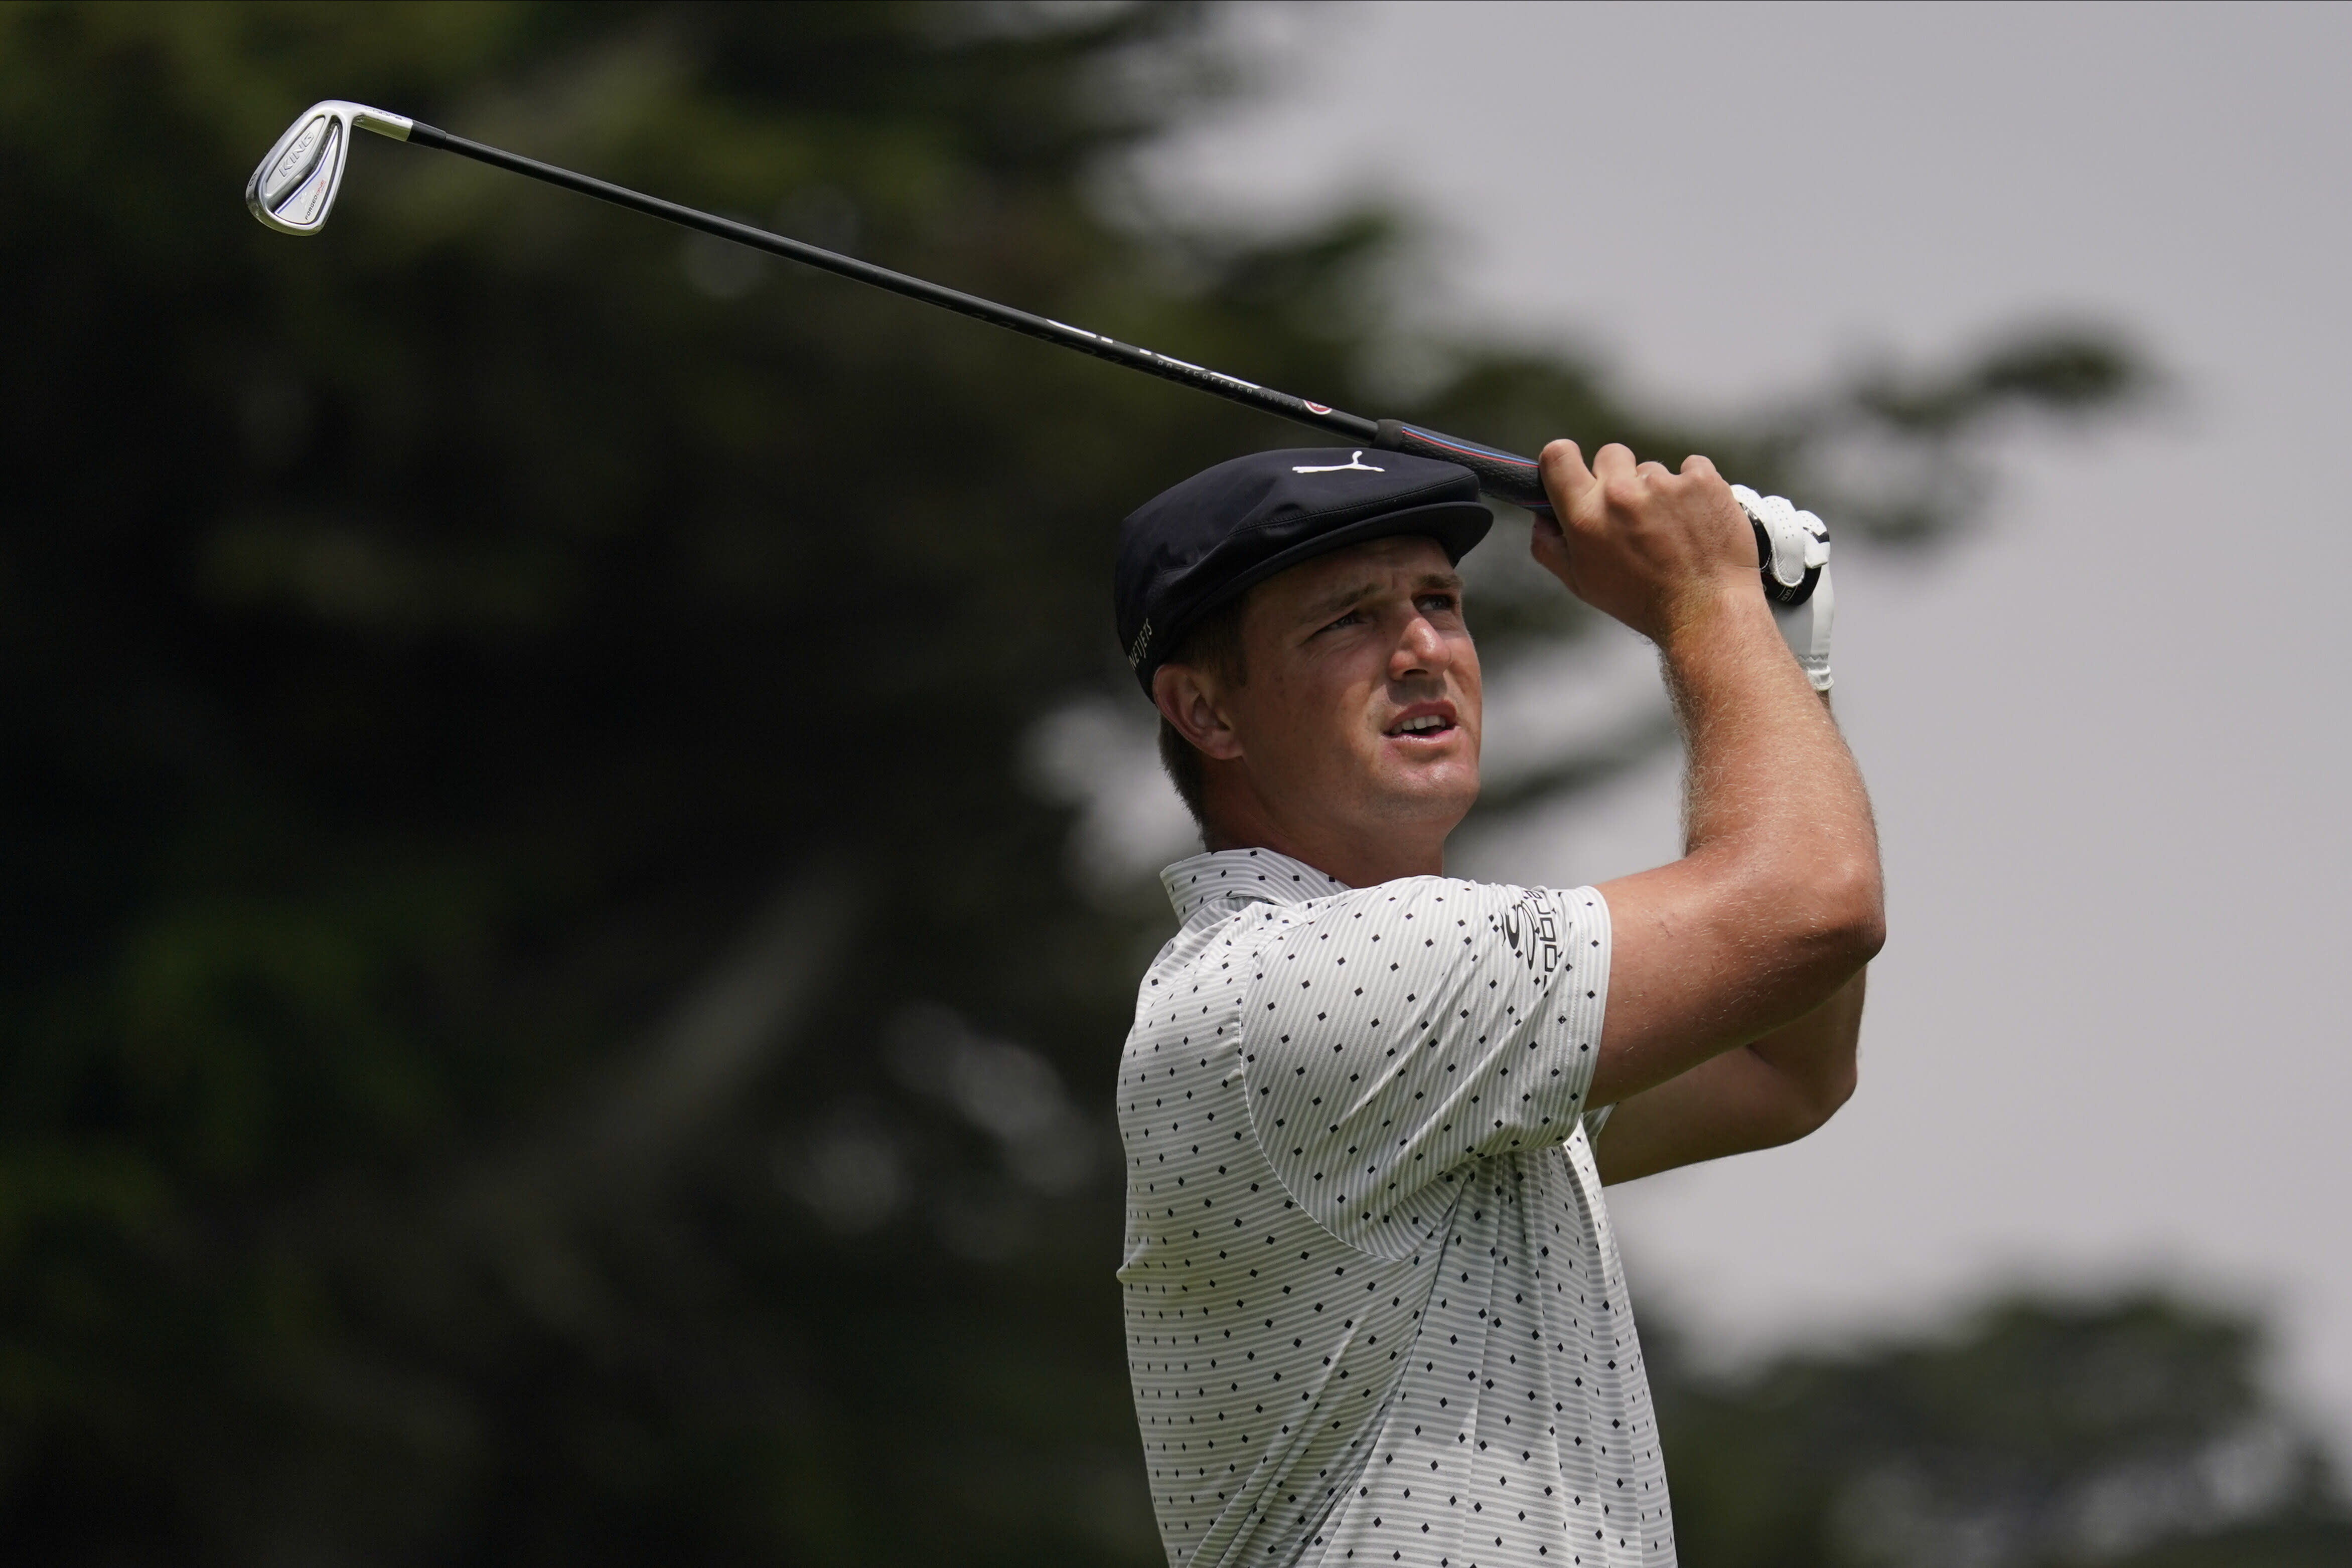 Bryson DeChambeau watches his tee shot on the third hole during the third round of the PGA Championship golf tournament at TPC Harding Park Saturday, Aug. 8, 2020, in San Francisco. (AP Photo/Jeff Chiu)